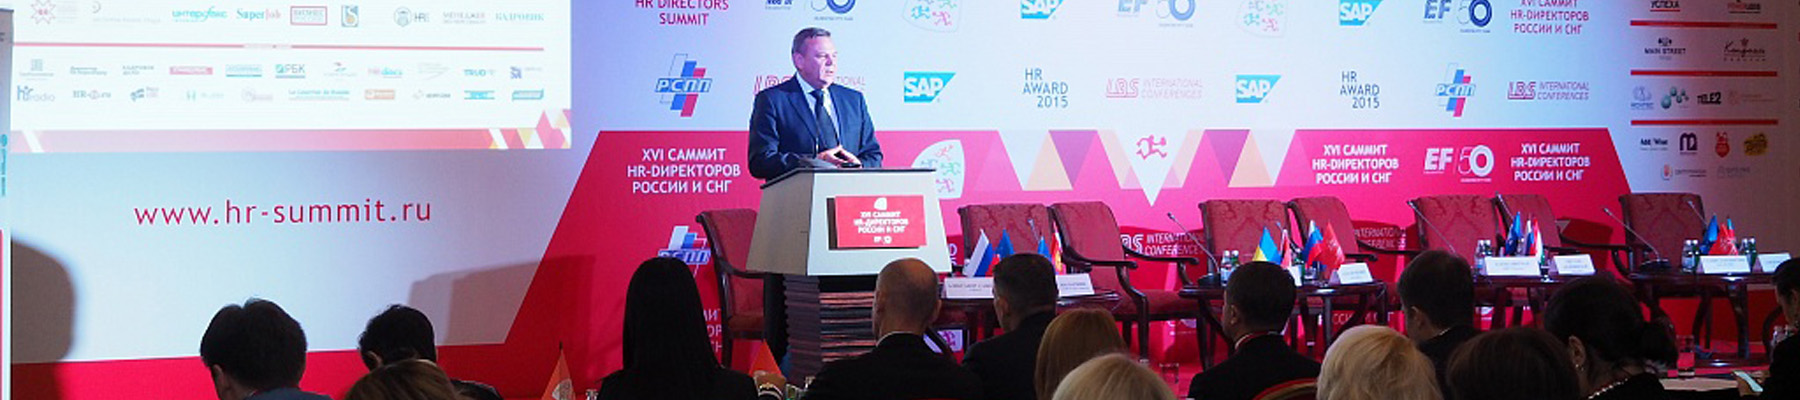 THE 20TH RUSSIA & CIS HR DIRECTORS SUMMIT